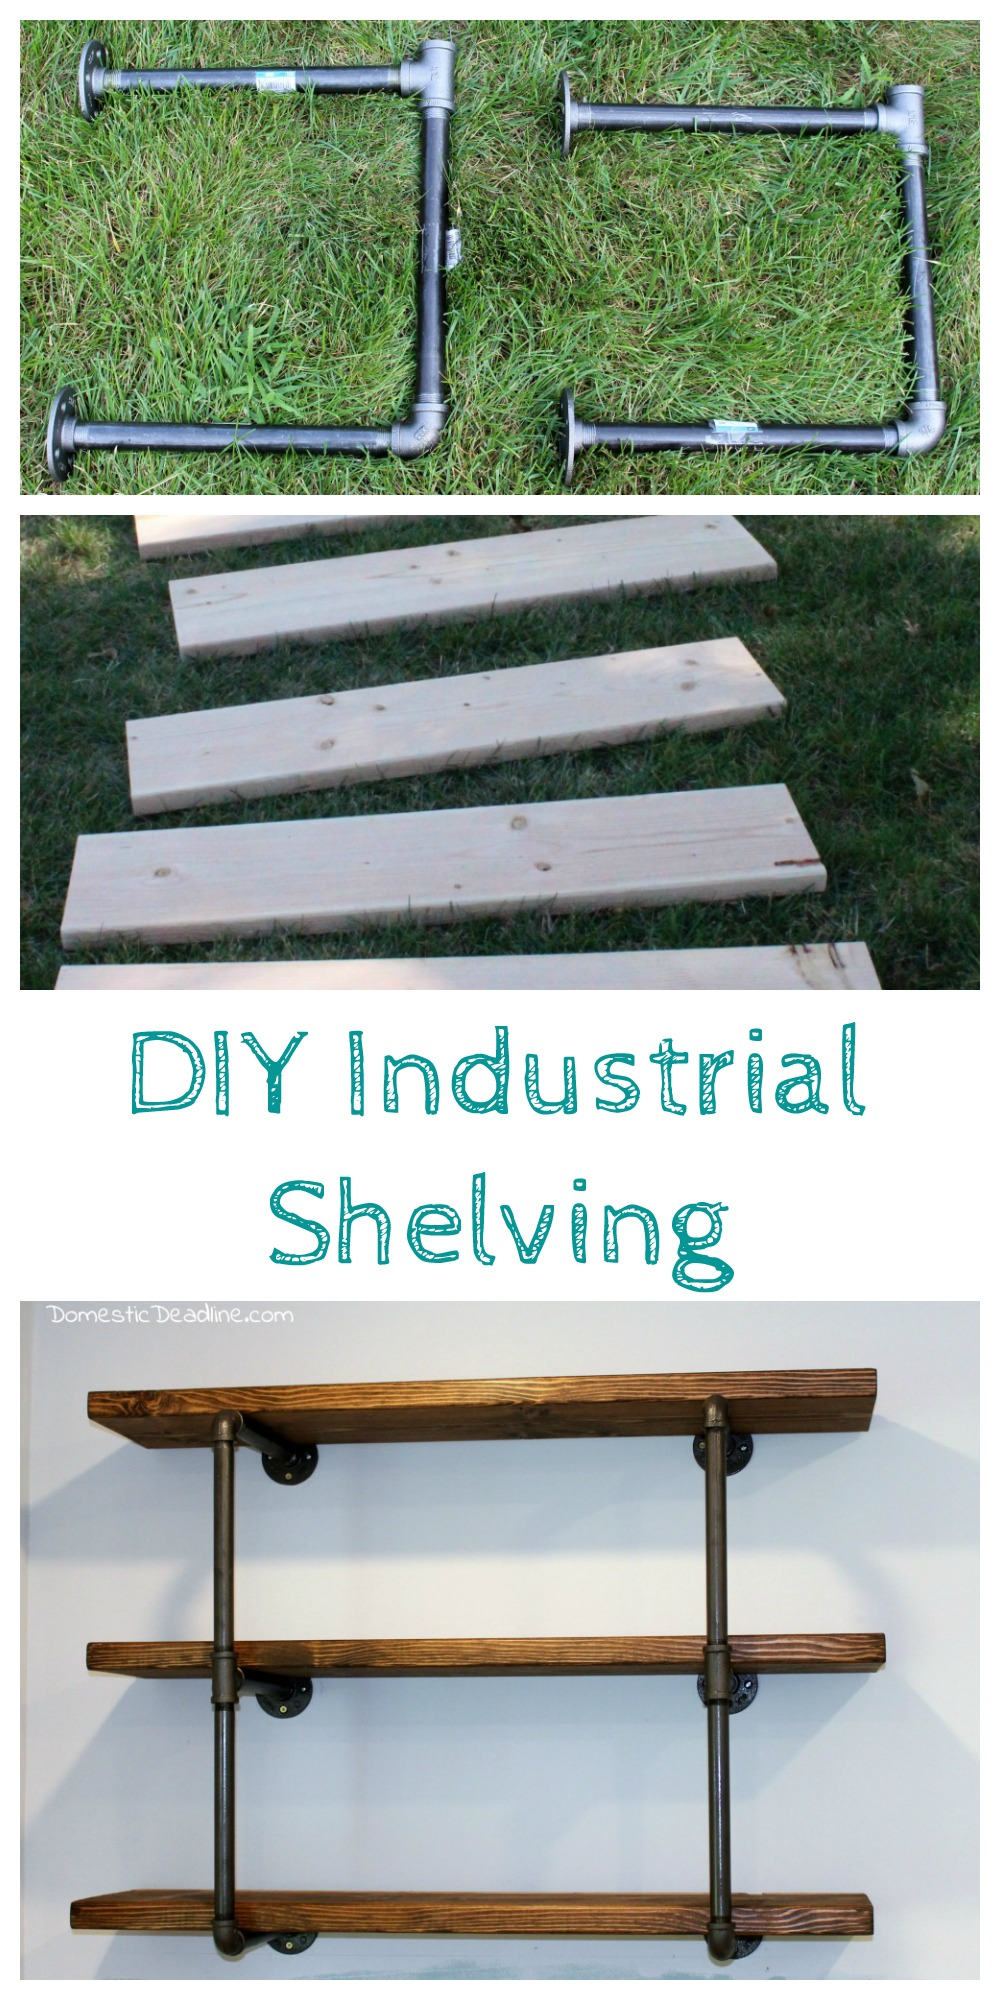 Diy industrial shelving farmhouse kitchen fixer upper for Diy industrial